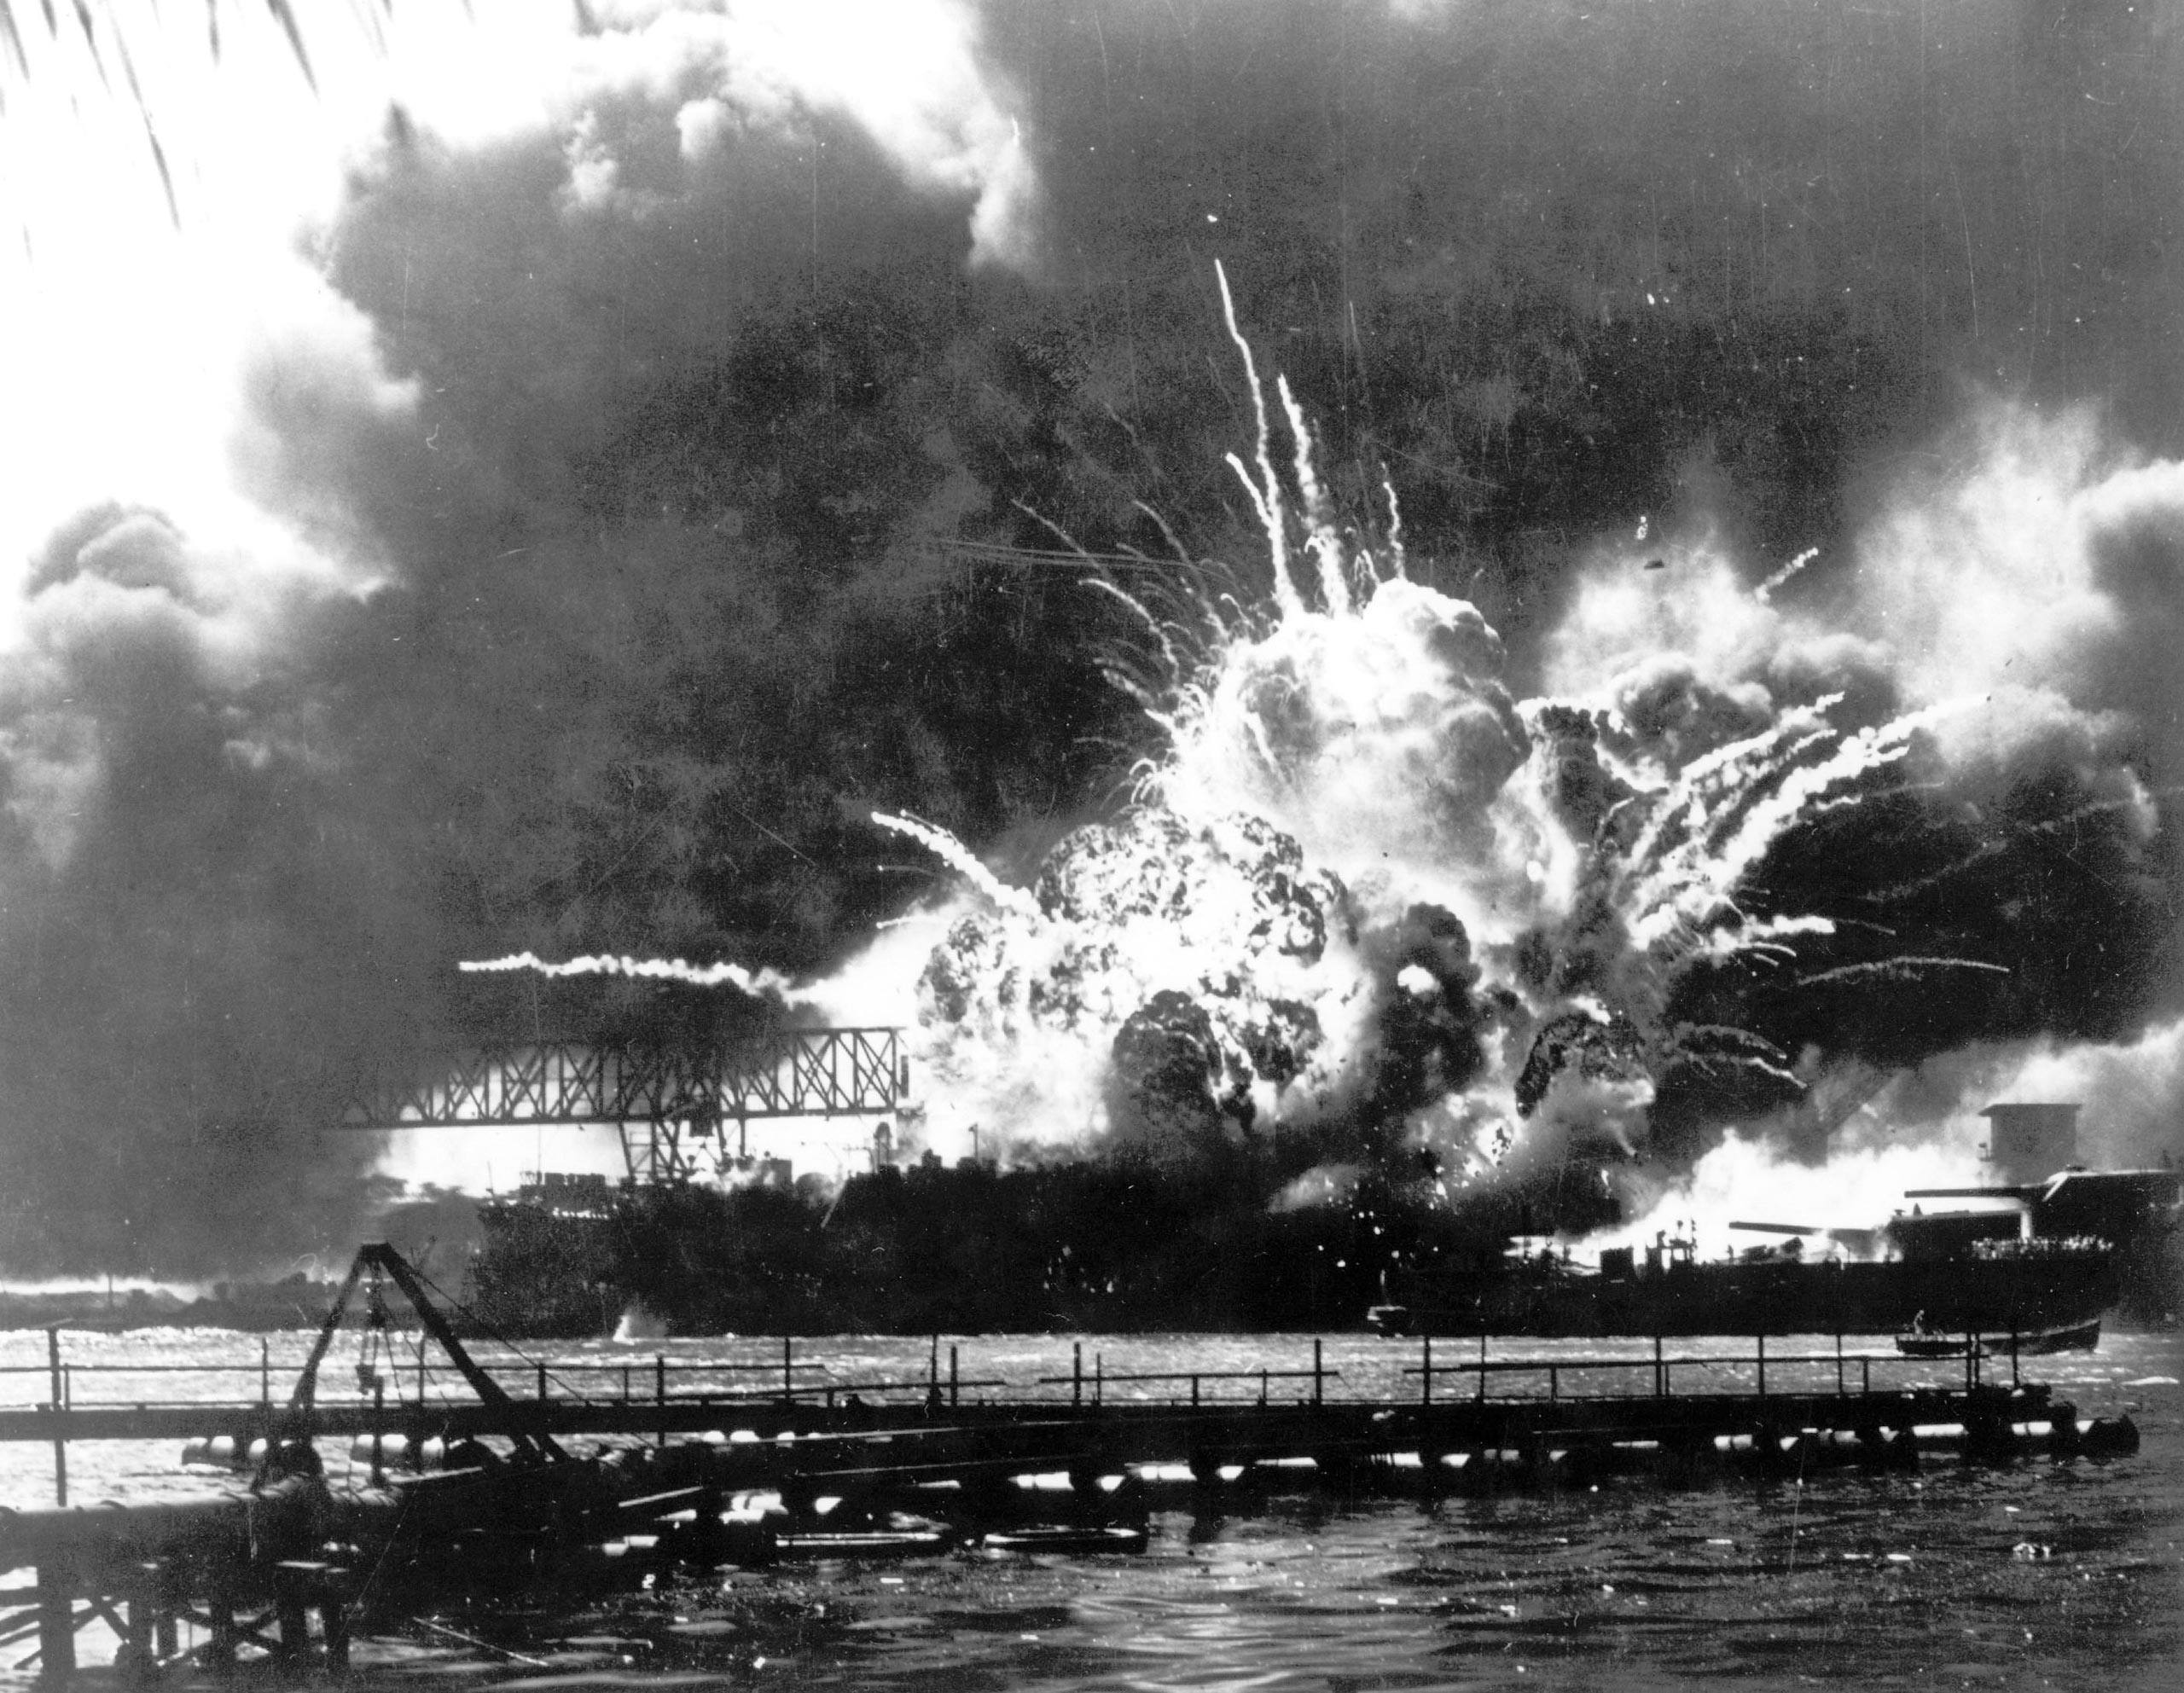 The destroyer USS Shaw explodes after being hit by bombs during the Japanese surprise attack on Pearl Harbor on Dec. 7, 1941.